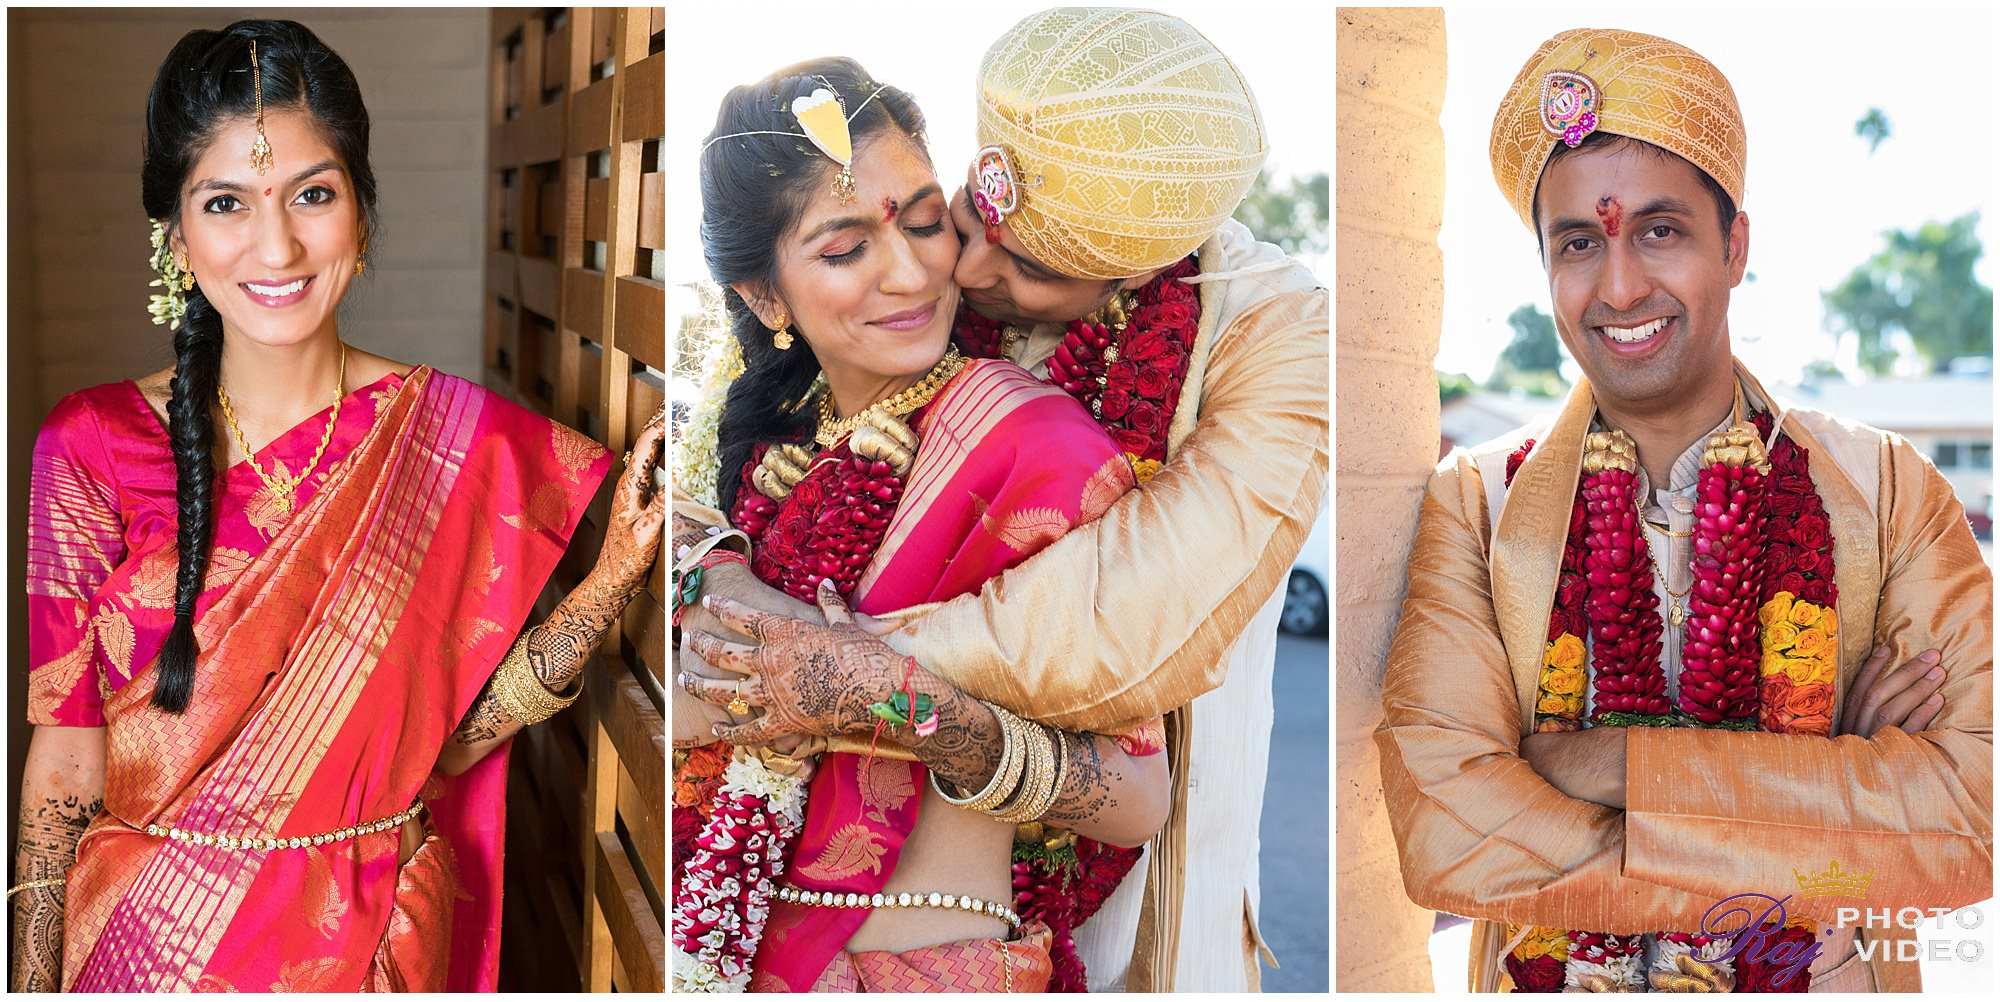 Sri_Venkata_Krishna_Kshetra_Temple_Tempe_Arizona_Indian_Wedding_Sapna_Shyam-7.jpg